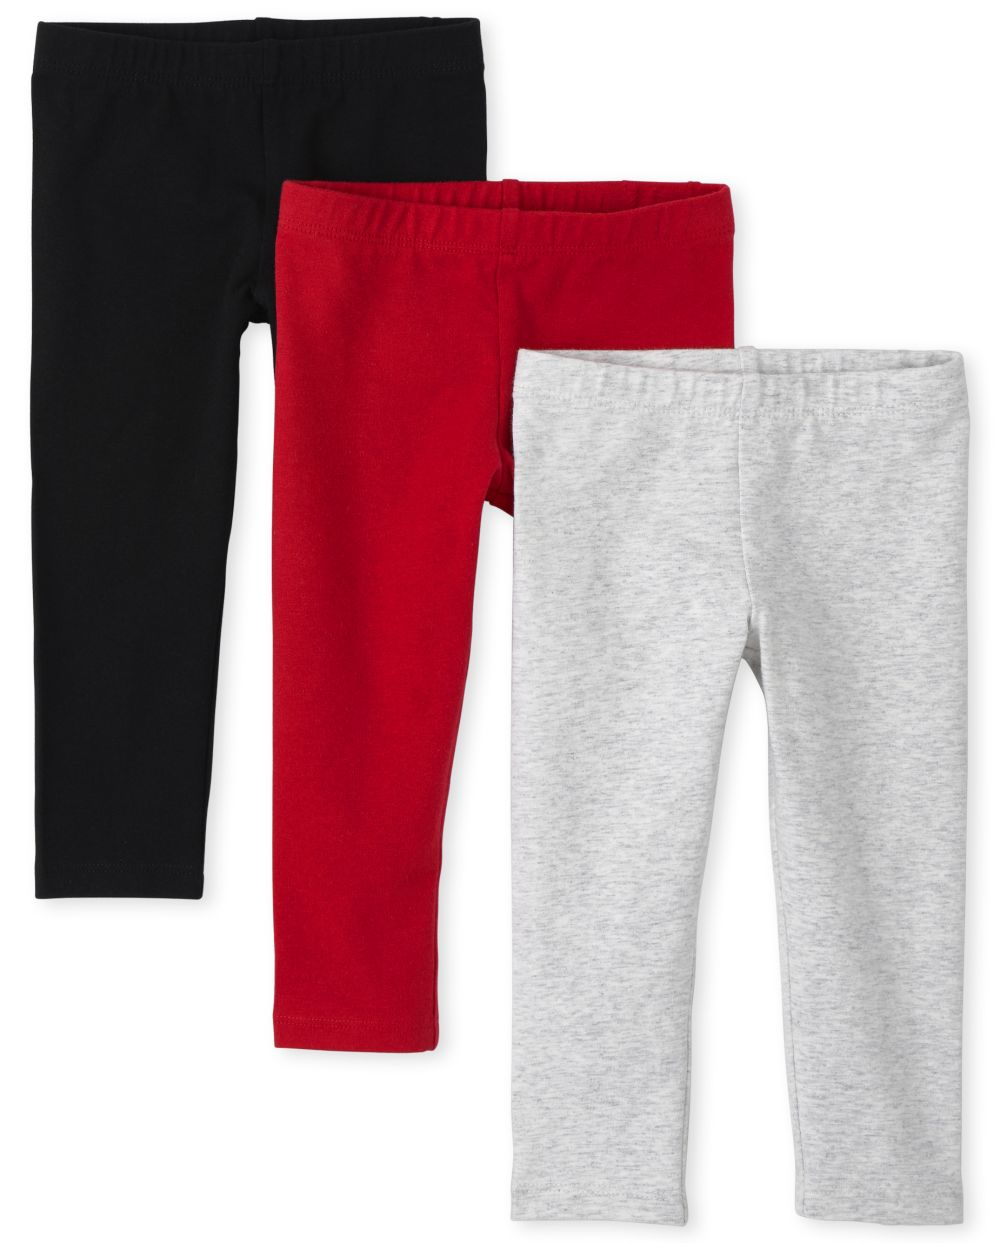 Toddler Girls Leggings 3-Pack